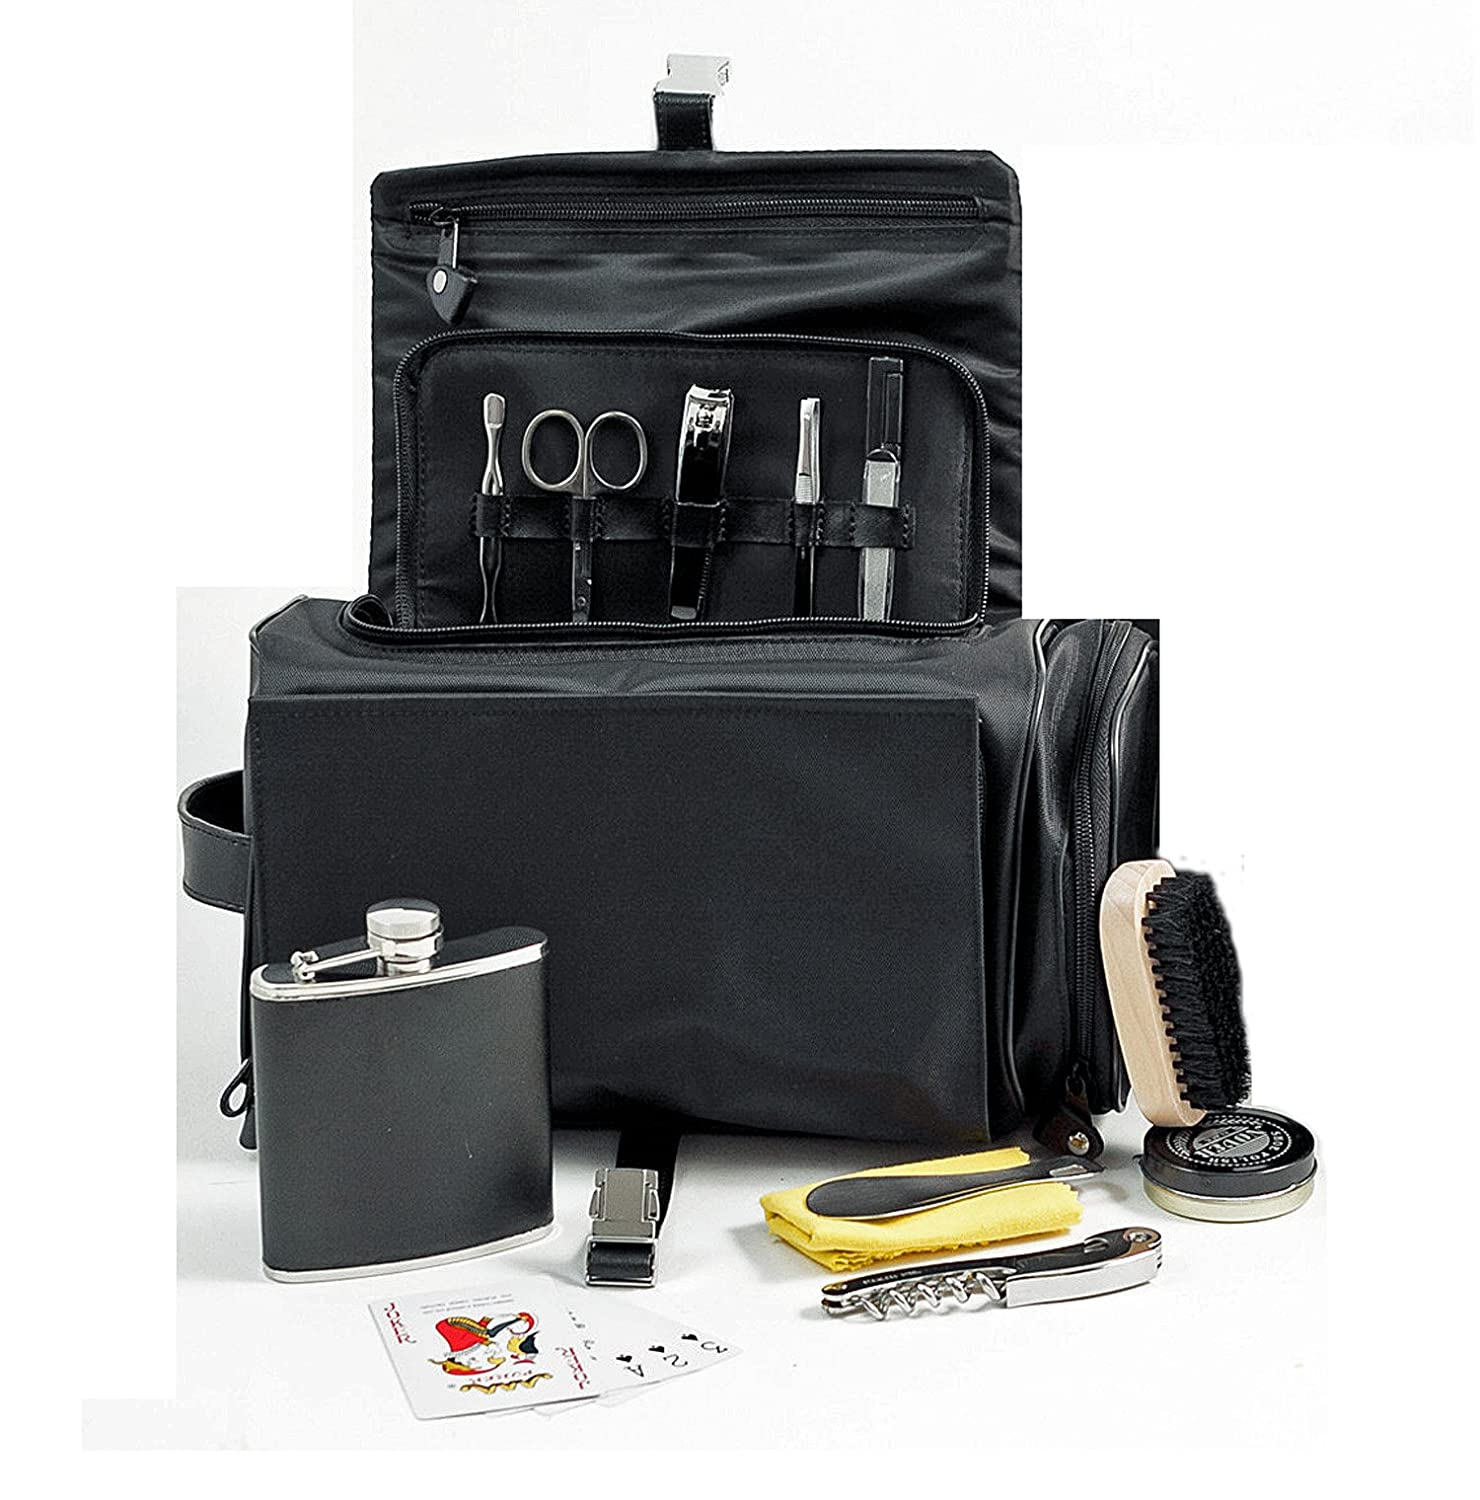 Mens Grooming /& Survival Set in Black Leather /& Nylon Case Mens Toiletry Kit Kensington Row Collection KRC-BB-BB576B-MG Deluxe Dopp Kit Mens Gifts